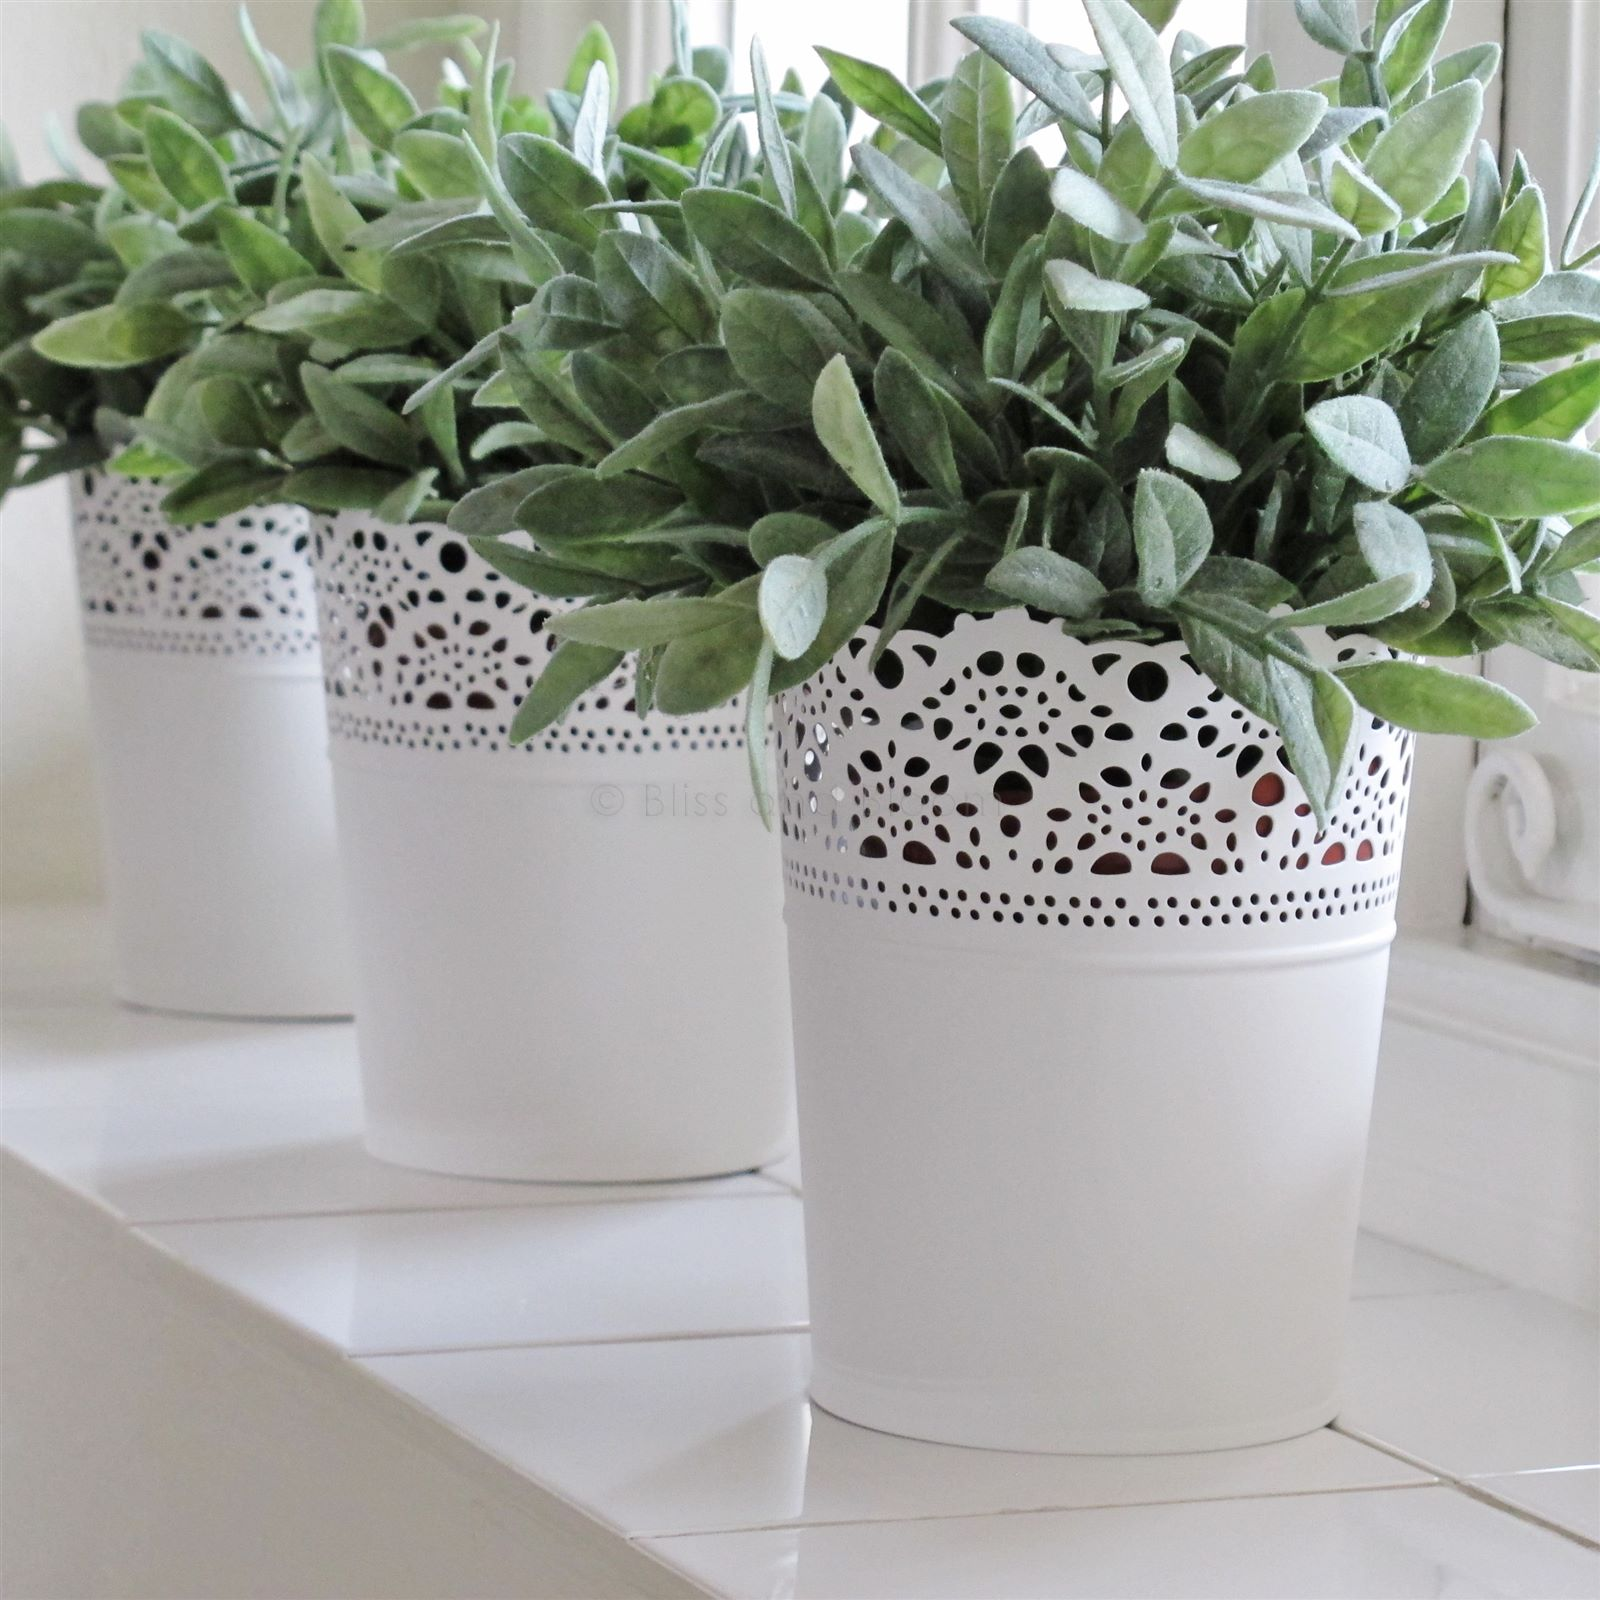 Super White Metal Planter French Style | Bliss and Bloom Ltd AR49